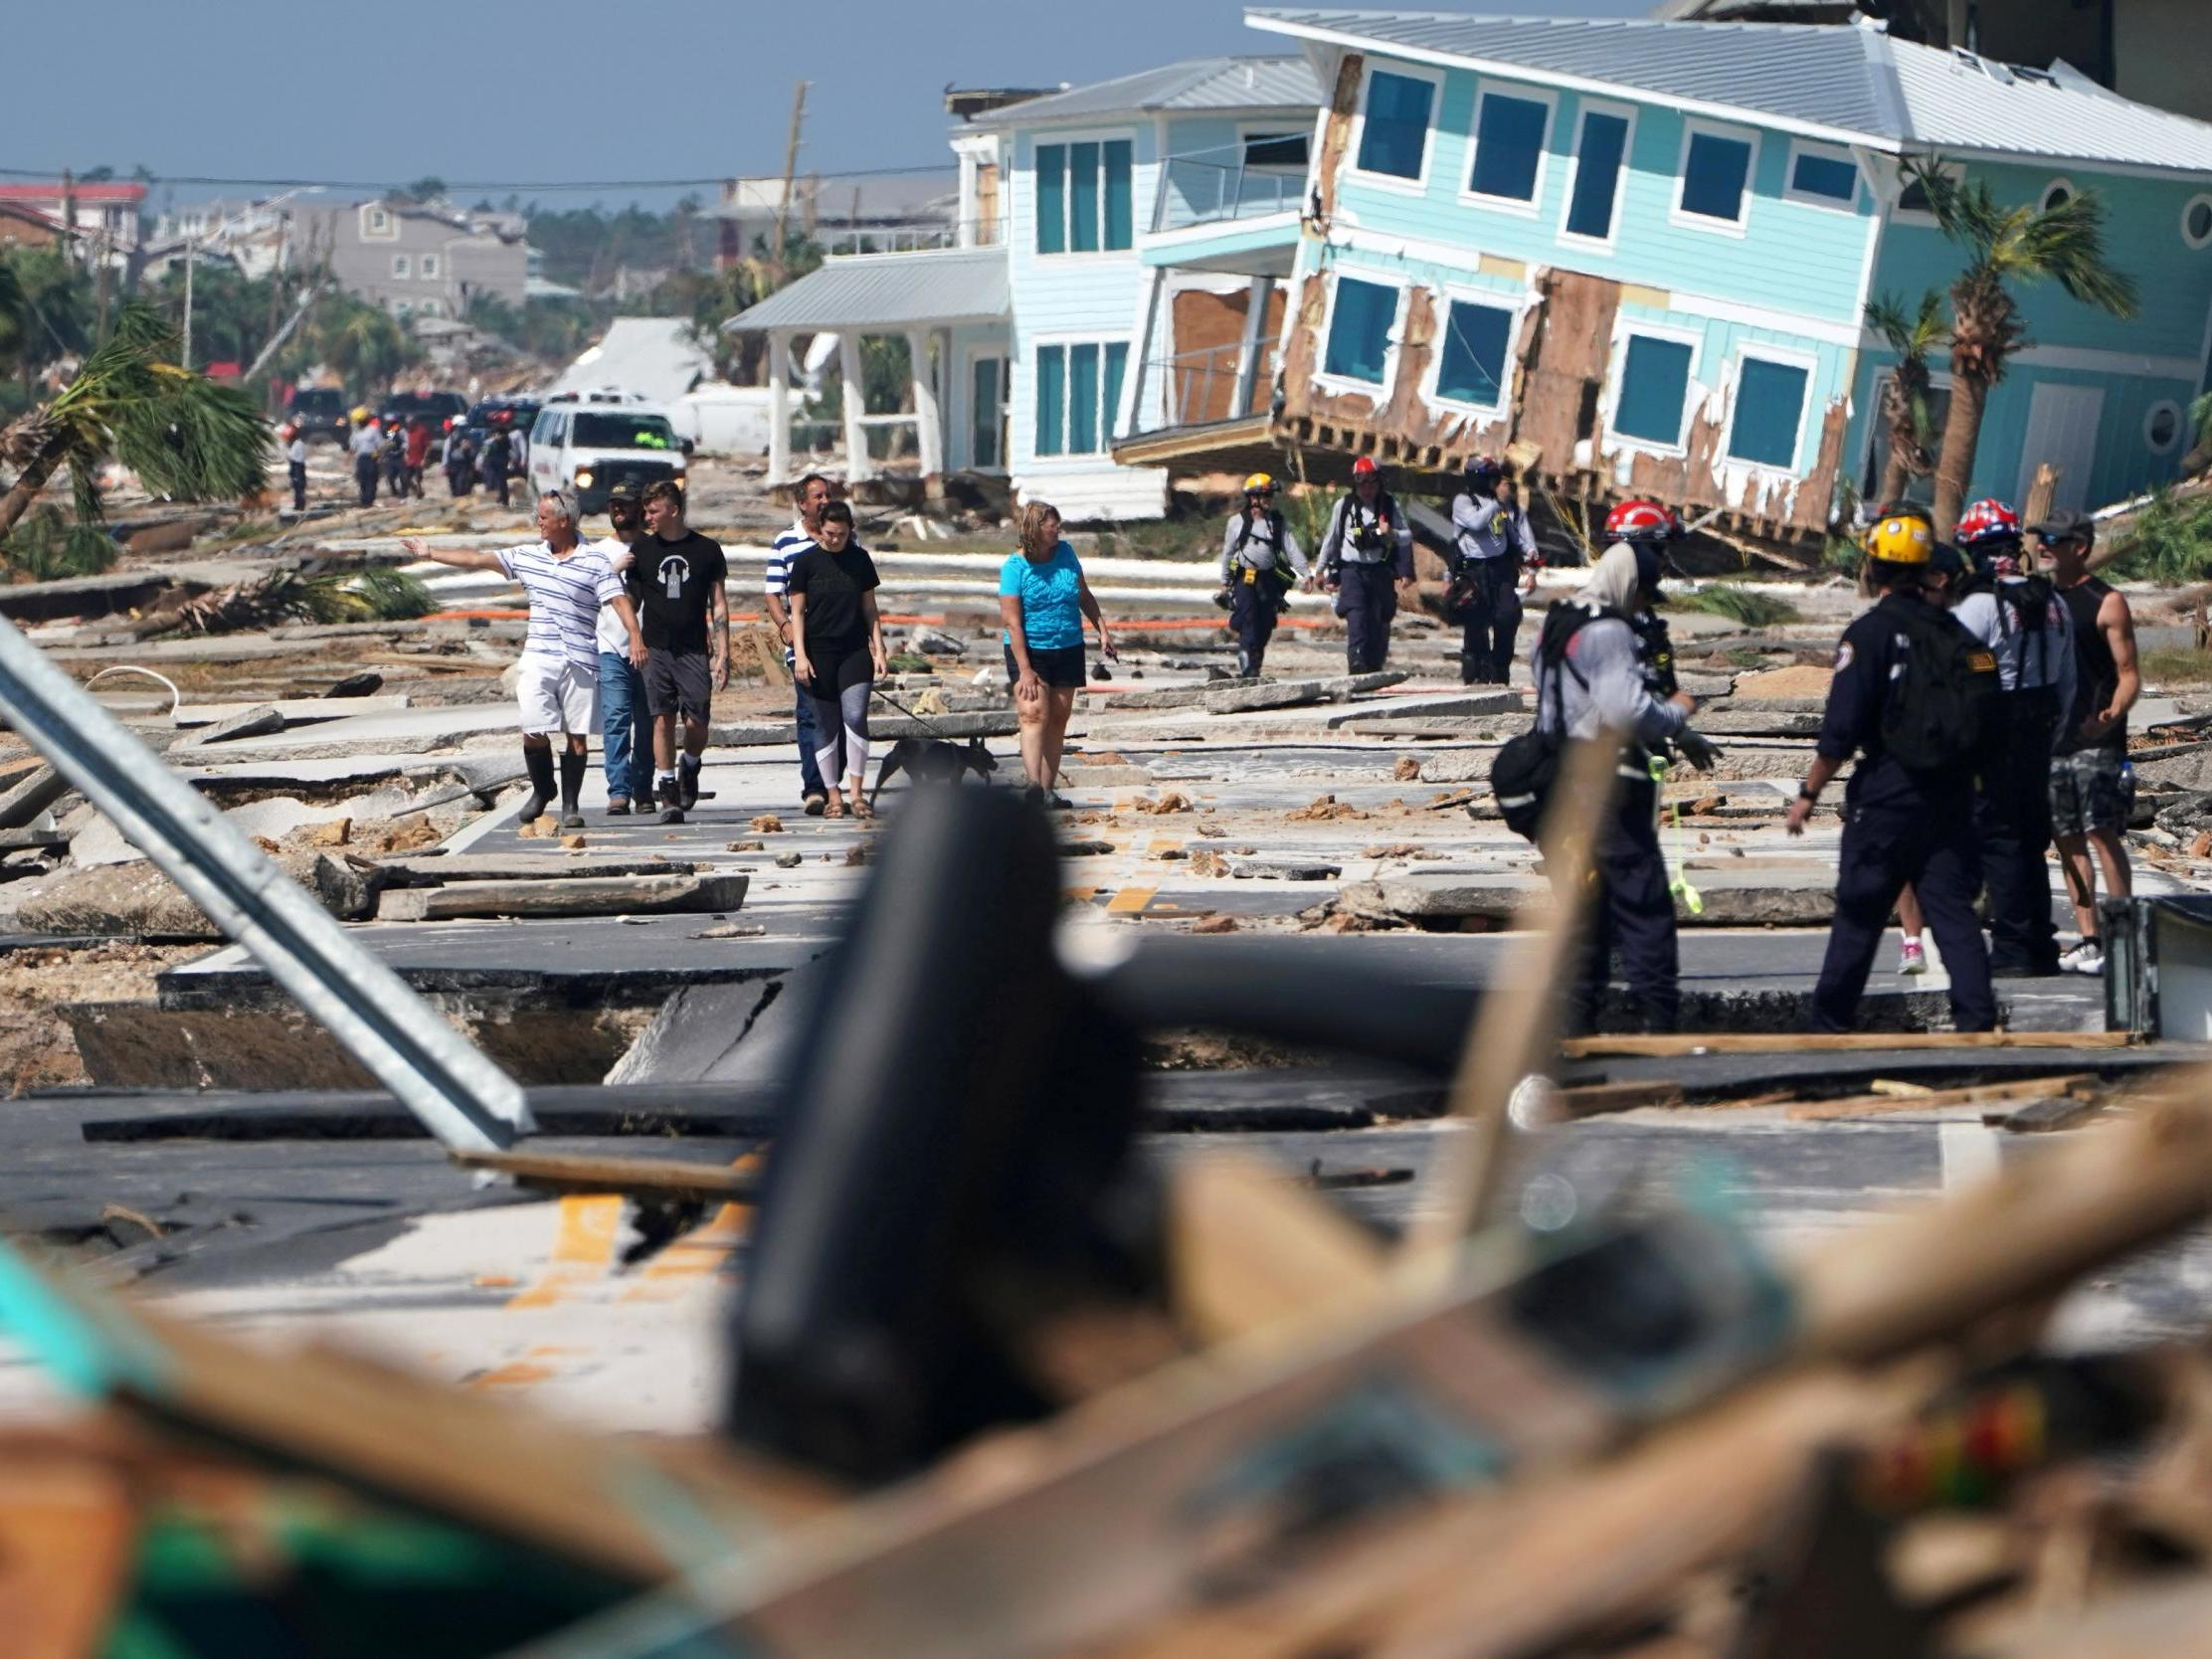 Hurricane Michael: Storm veers offshore leaving devastation and desperate rescue efforts as death toll rises